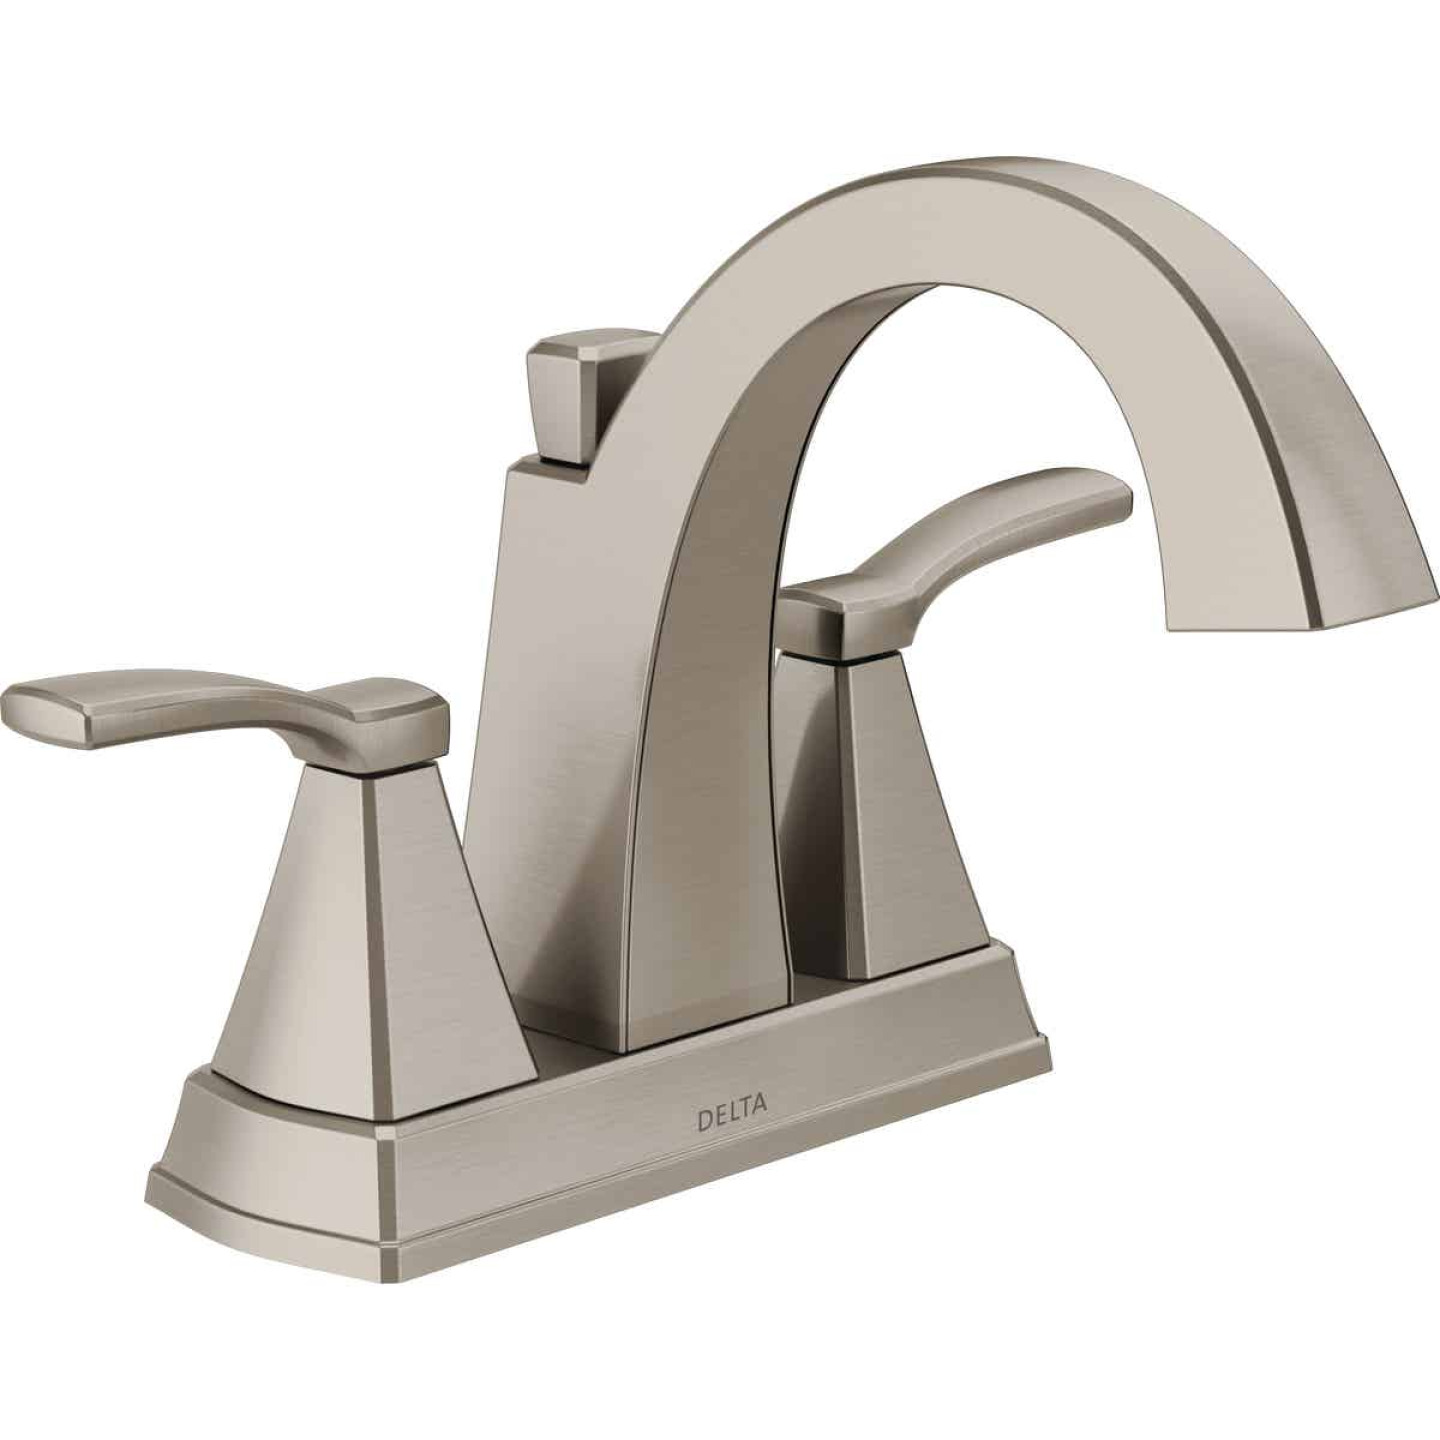 Delta Flynn Stainless 2-Handle Lever 4 In. Centerset Bathroom Faucet with Pop-Up Image 1